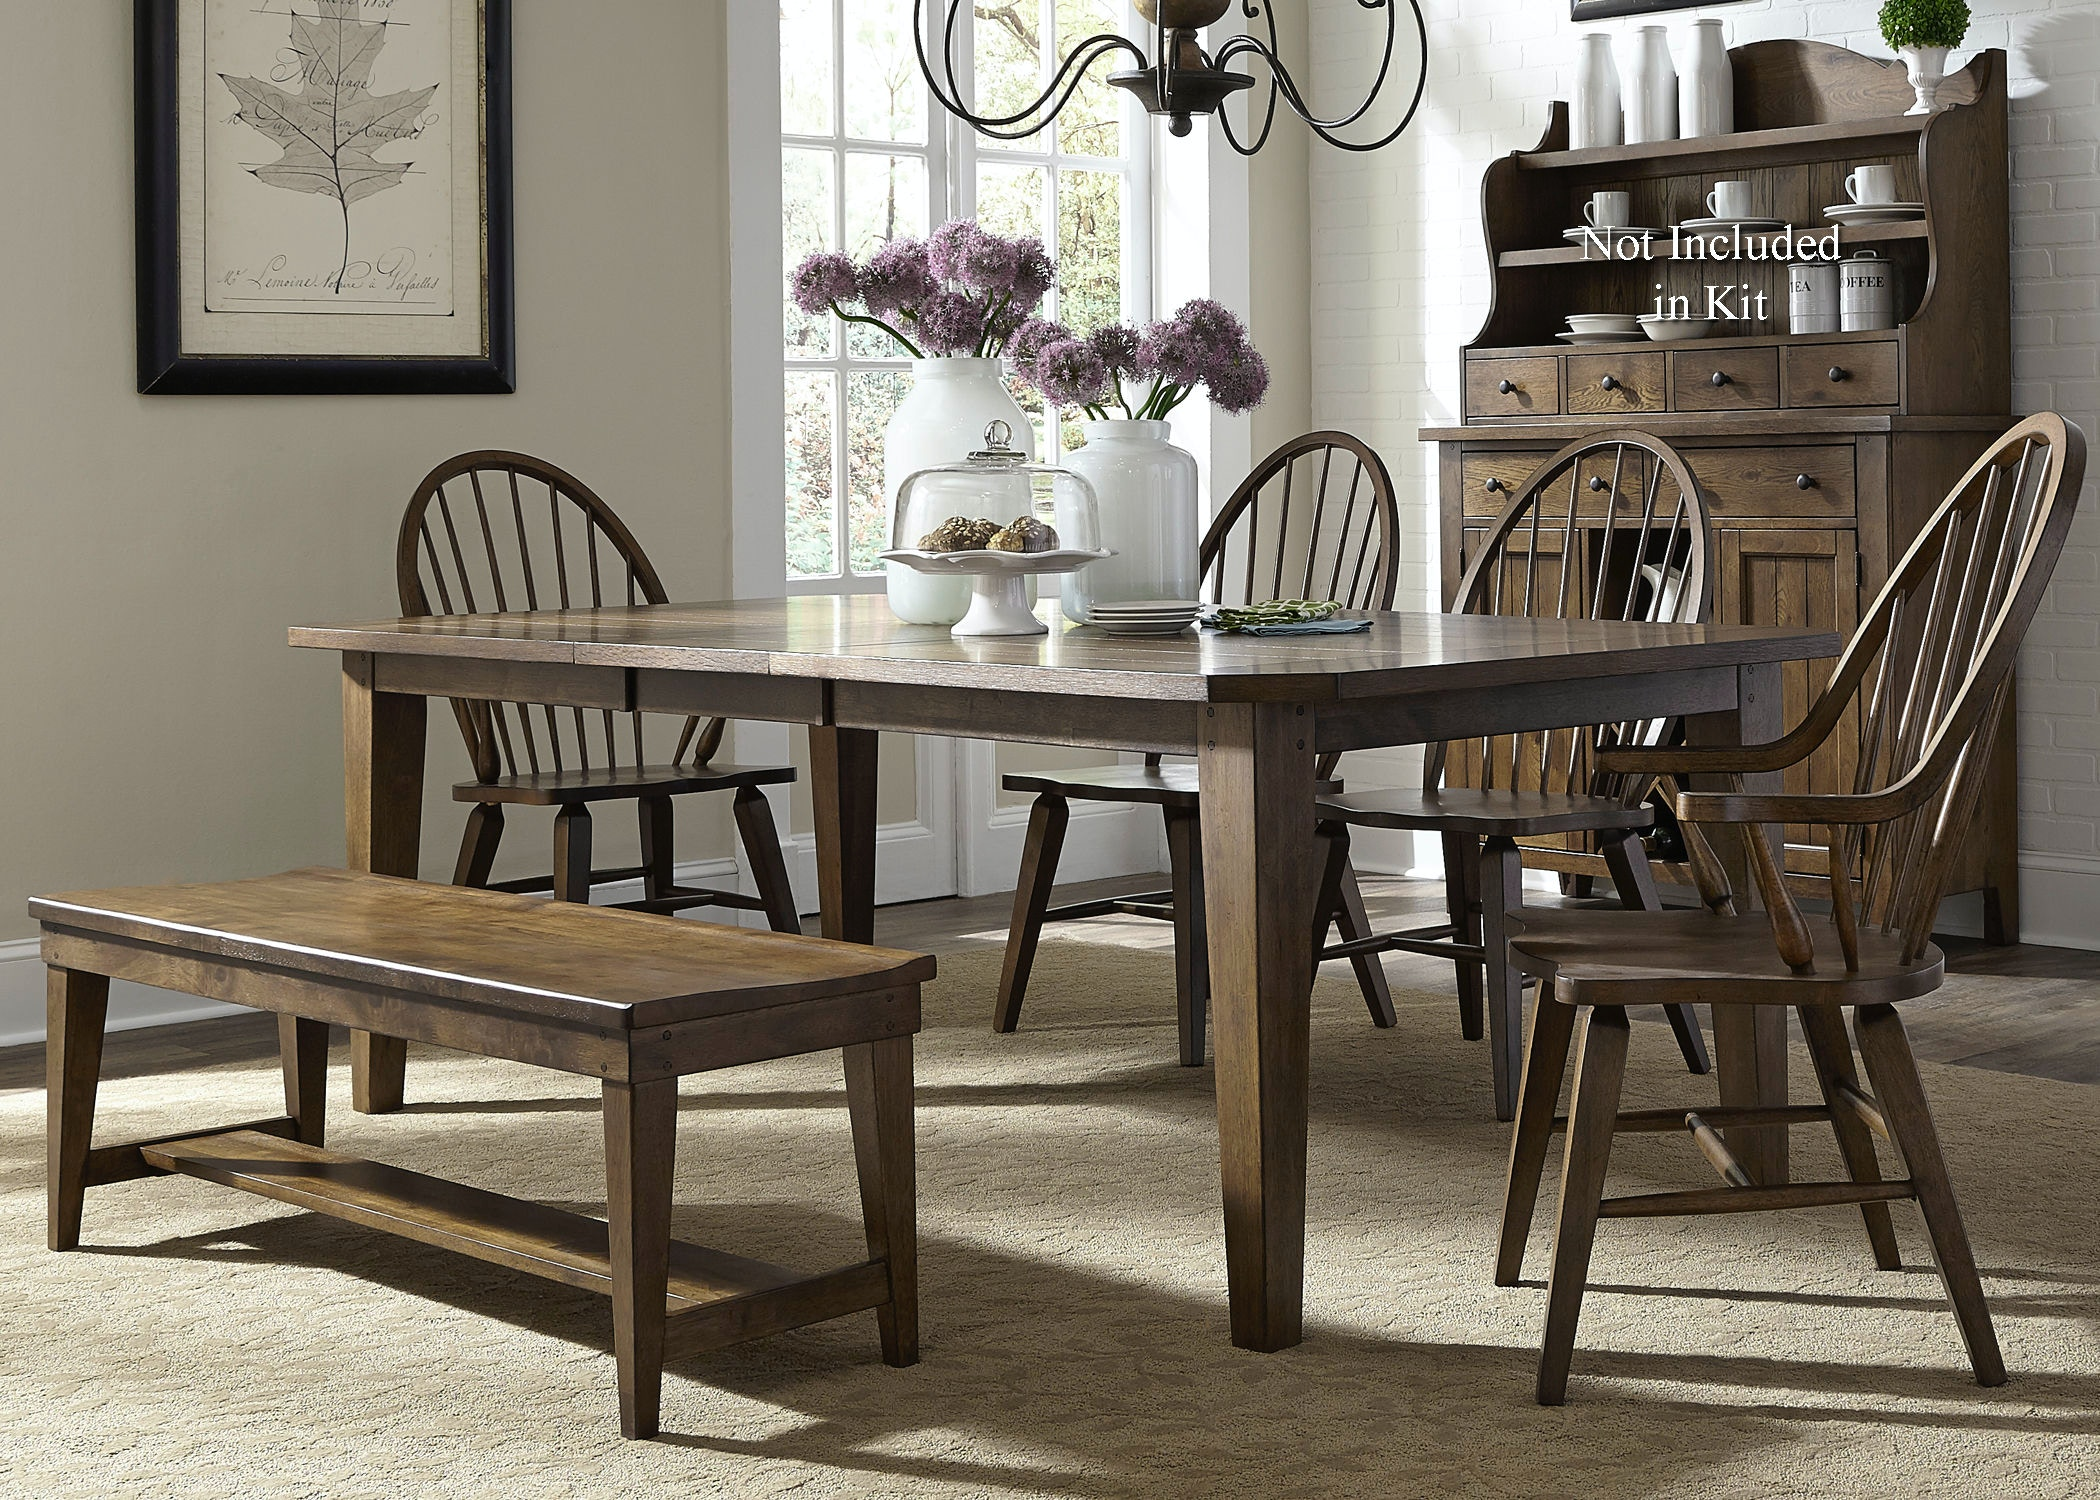 Dining Room Chairs Vancouver Wa Liberty Furniture 6 Piece Rectangular Table Set 382 Dr